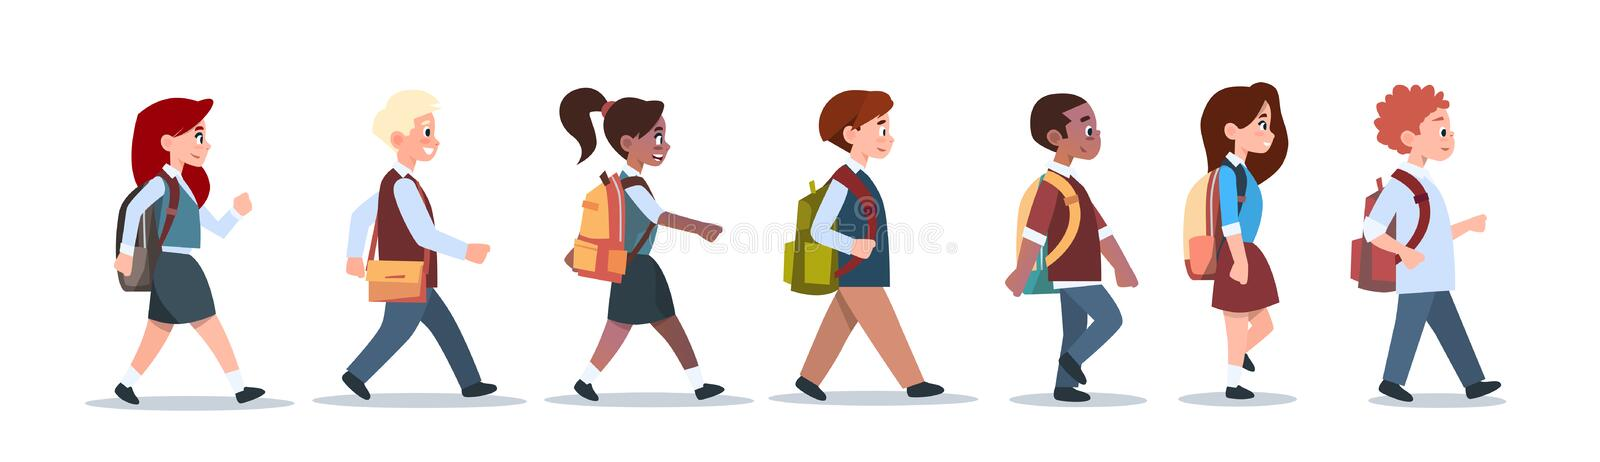 Group Of Pupils Mix Race Walking School Children Isolated Diverse Small Primary Students. Flat Vector Illustration royalty free illustration